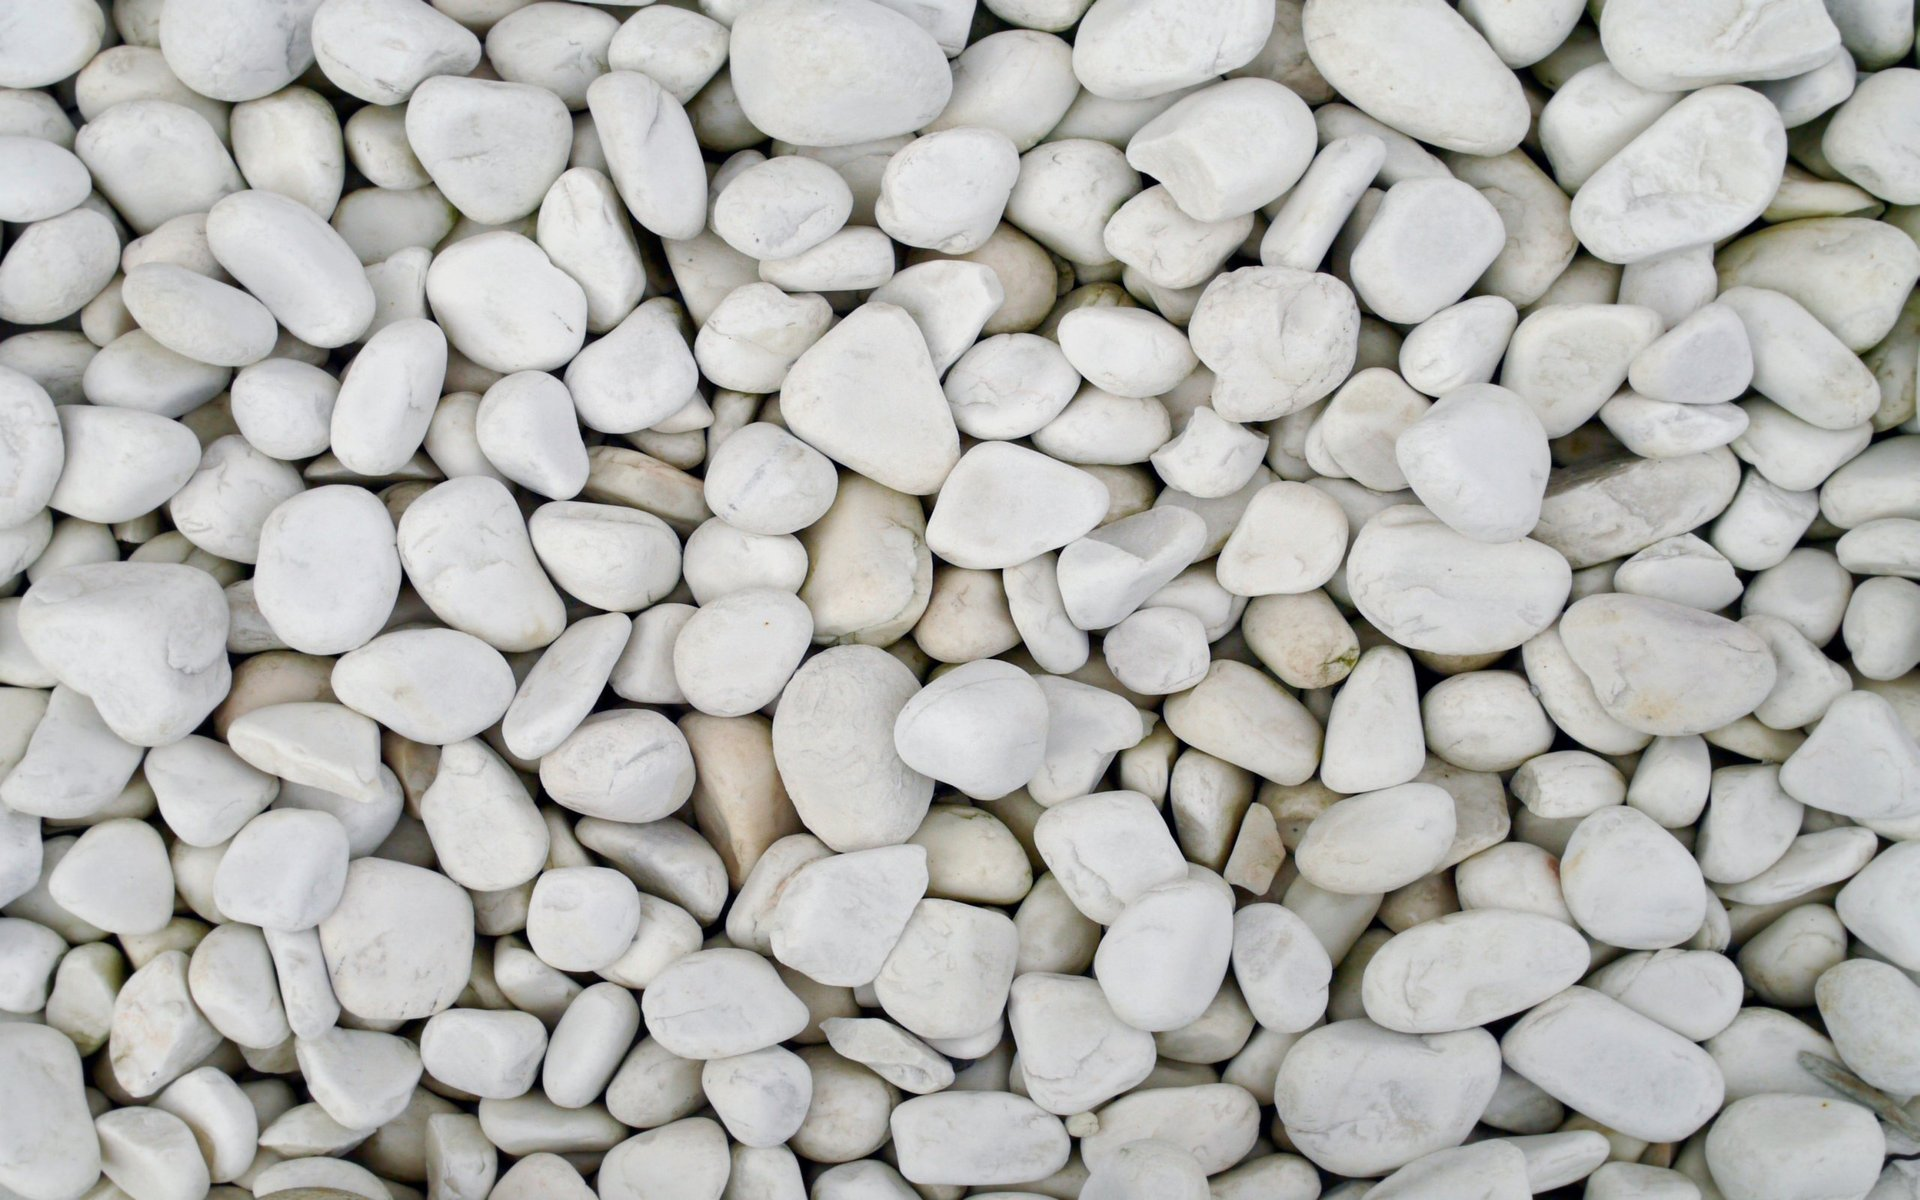 pebble, stones, download background, background, small stones, stones